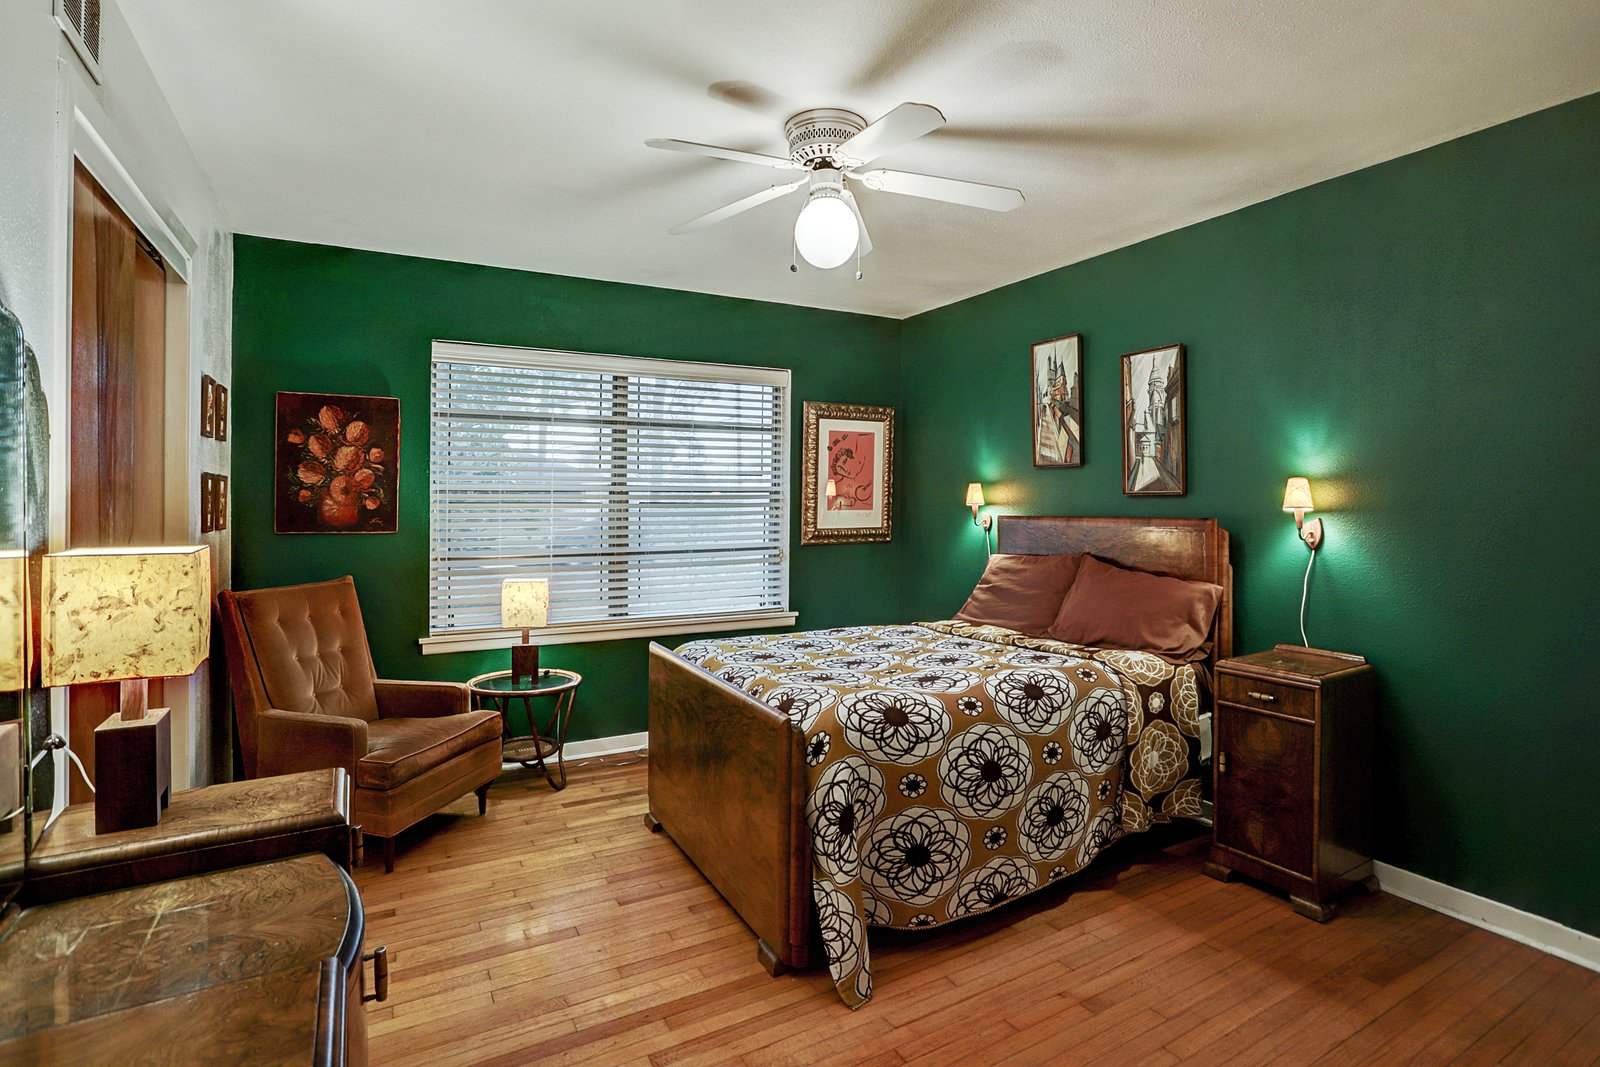 In the master bedroom, richly textured furniture complements the green accent walls.